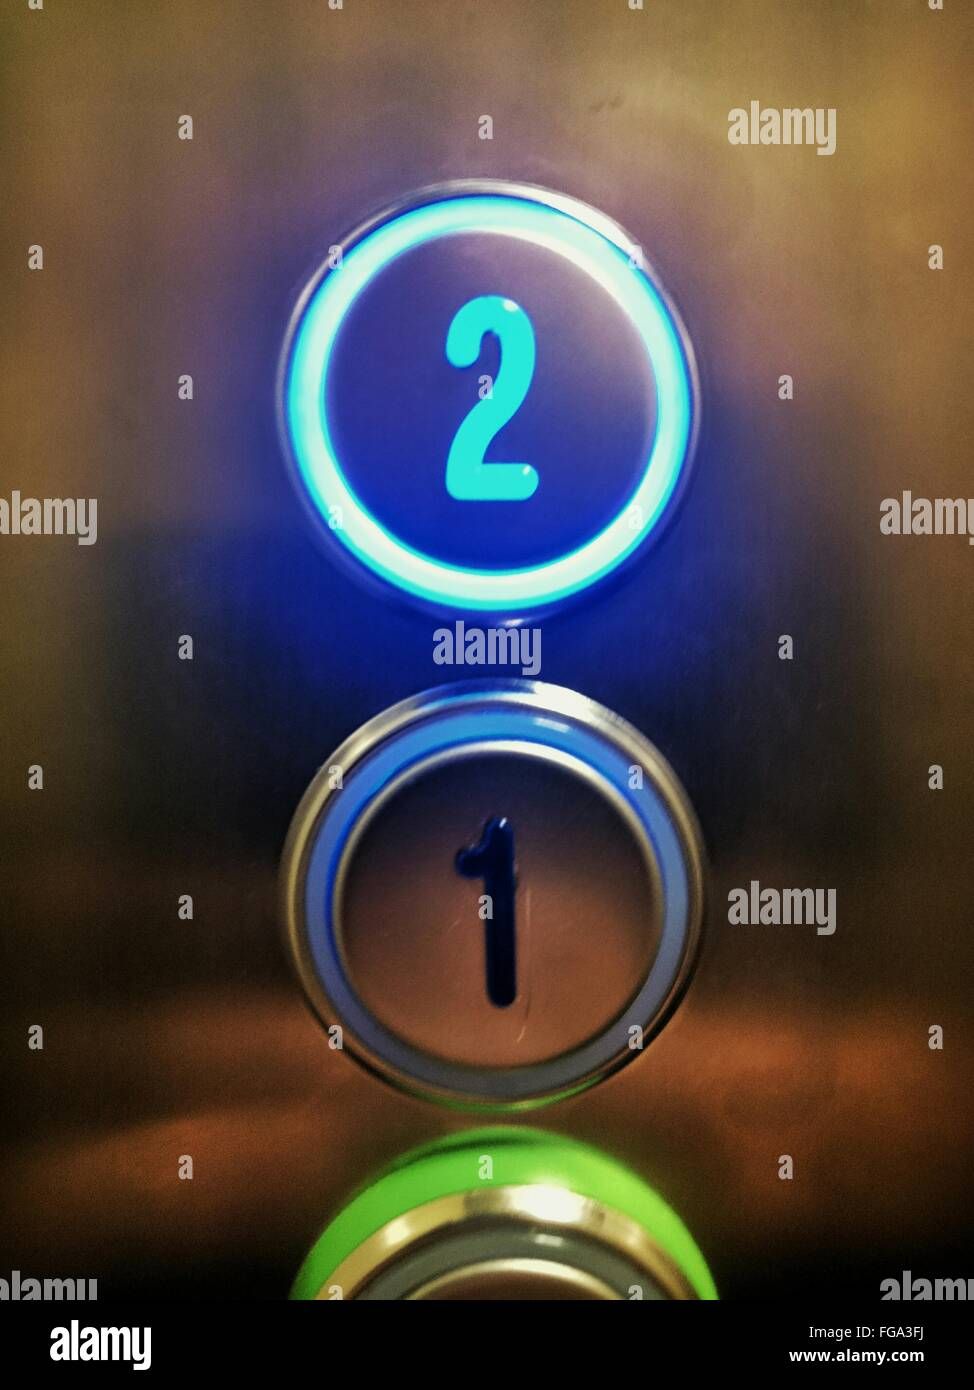 Close-Up Of Illuminated Push Buttons In Elevator - Stock Image